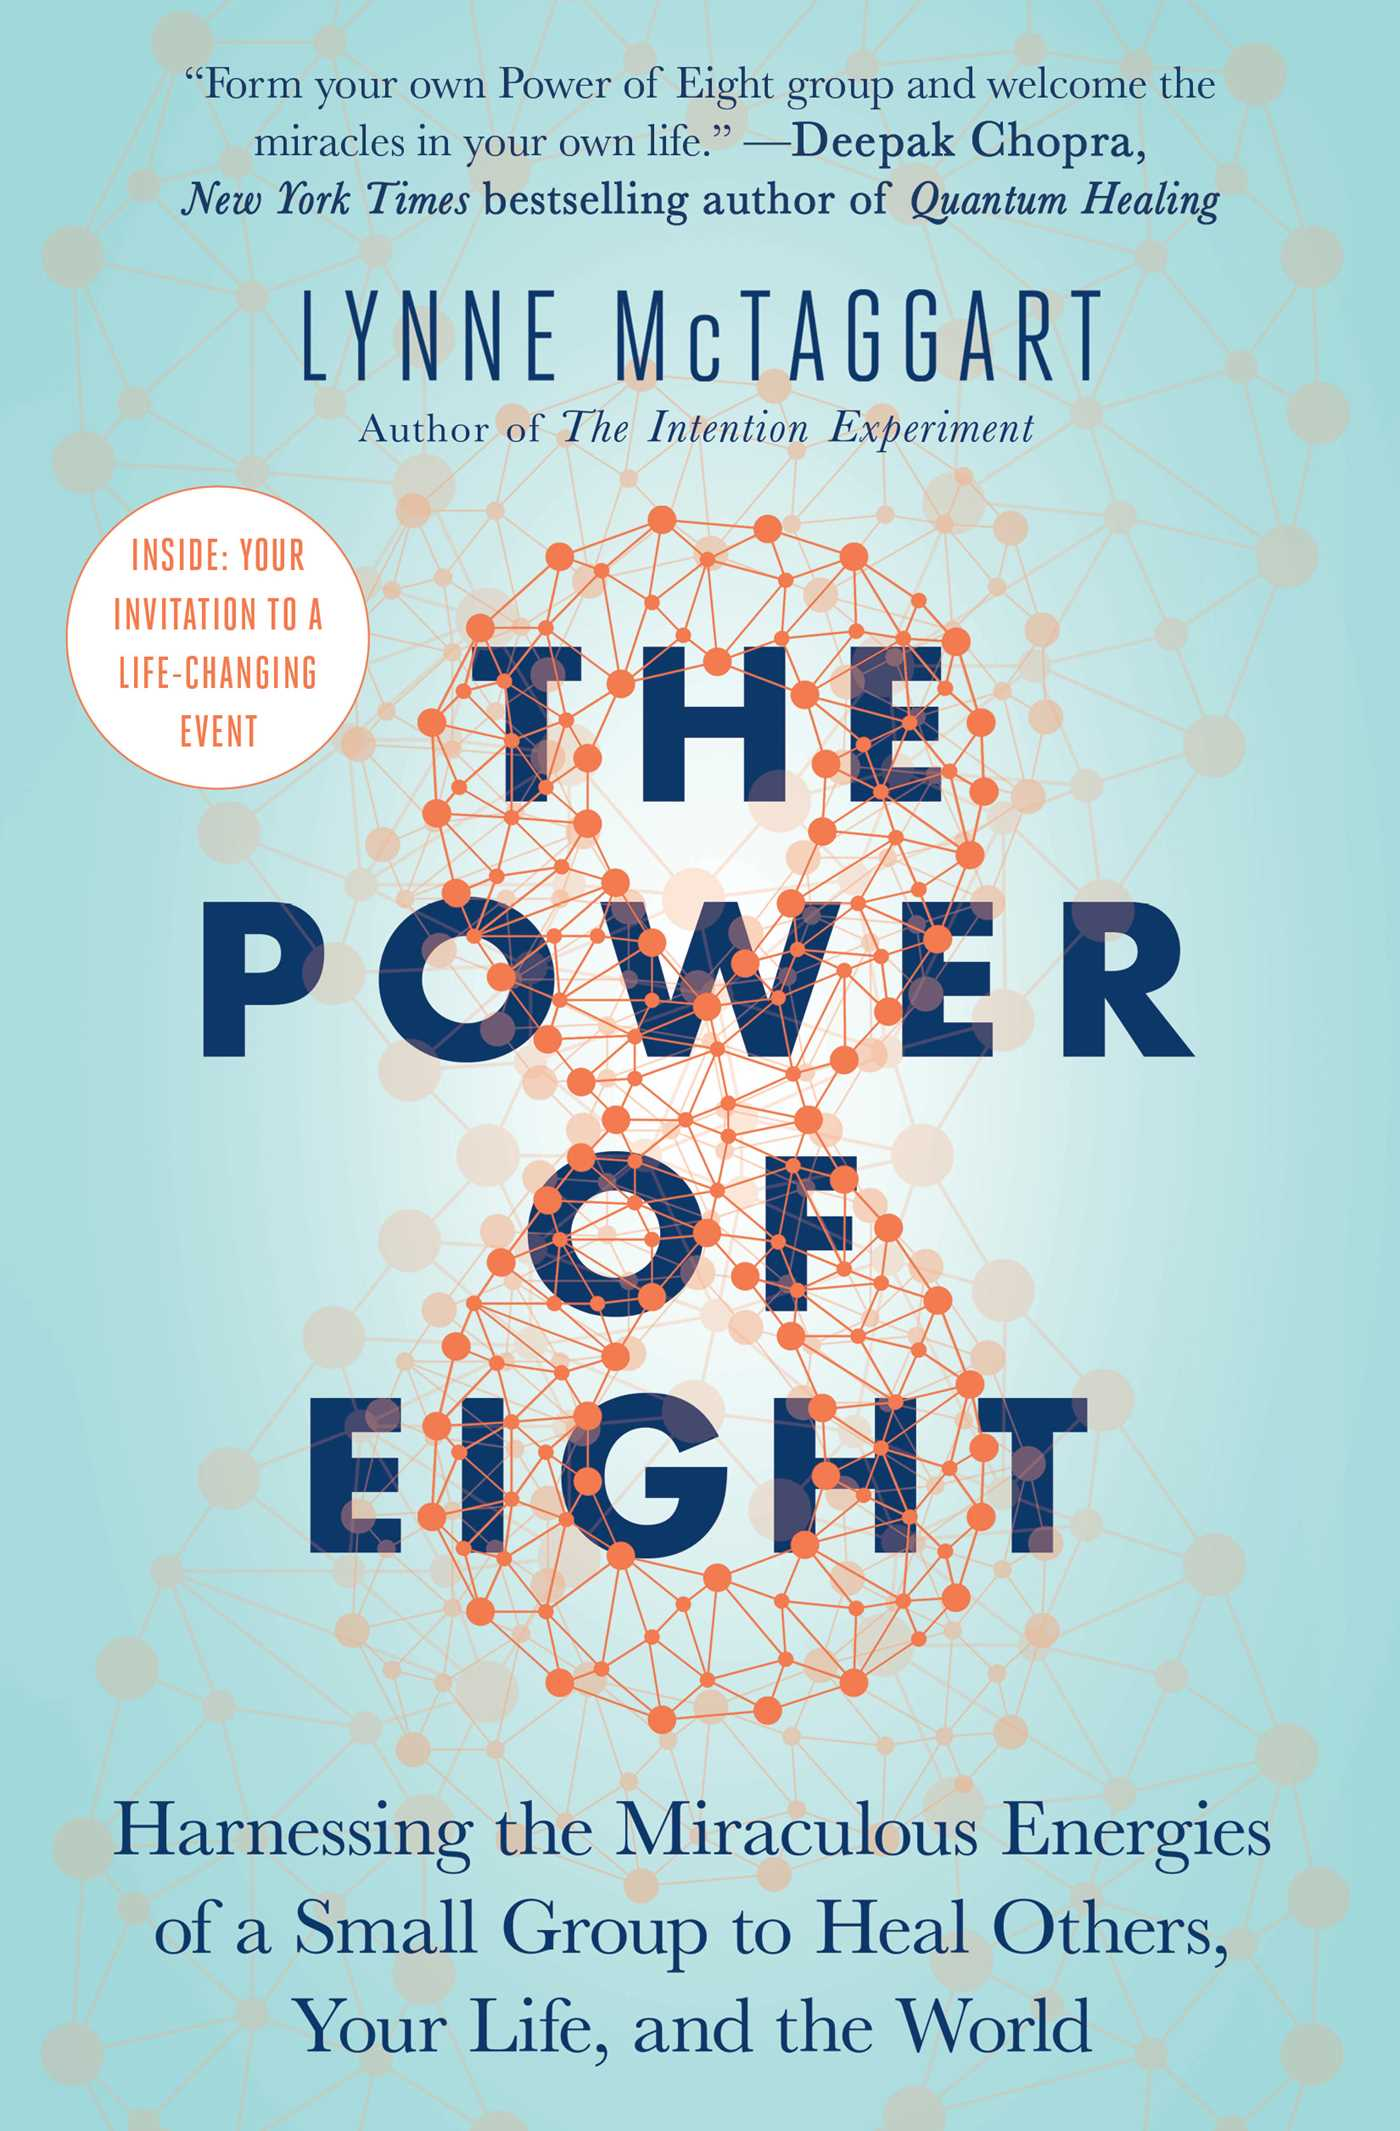 The cover of the book The Power of Eight